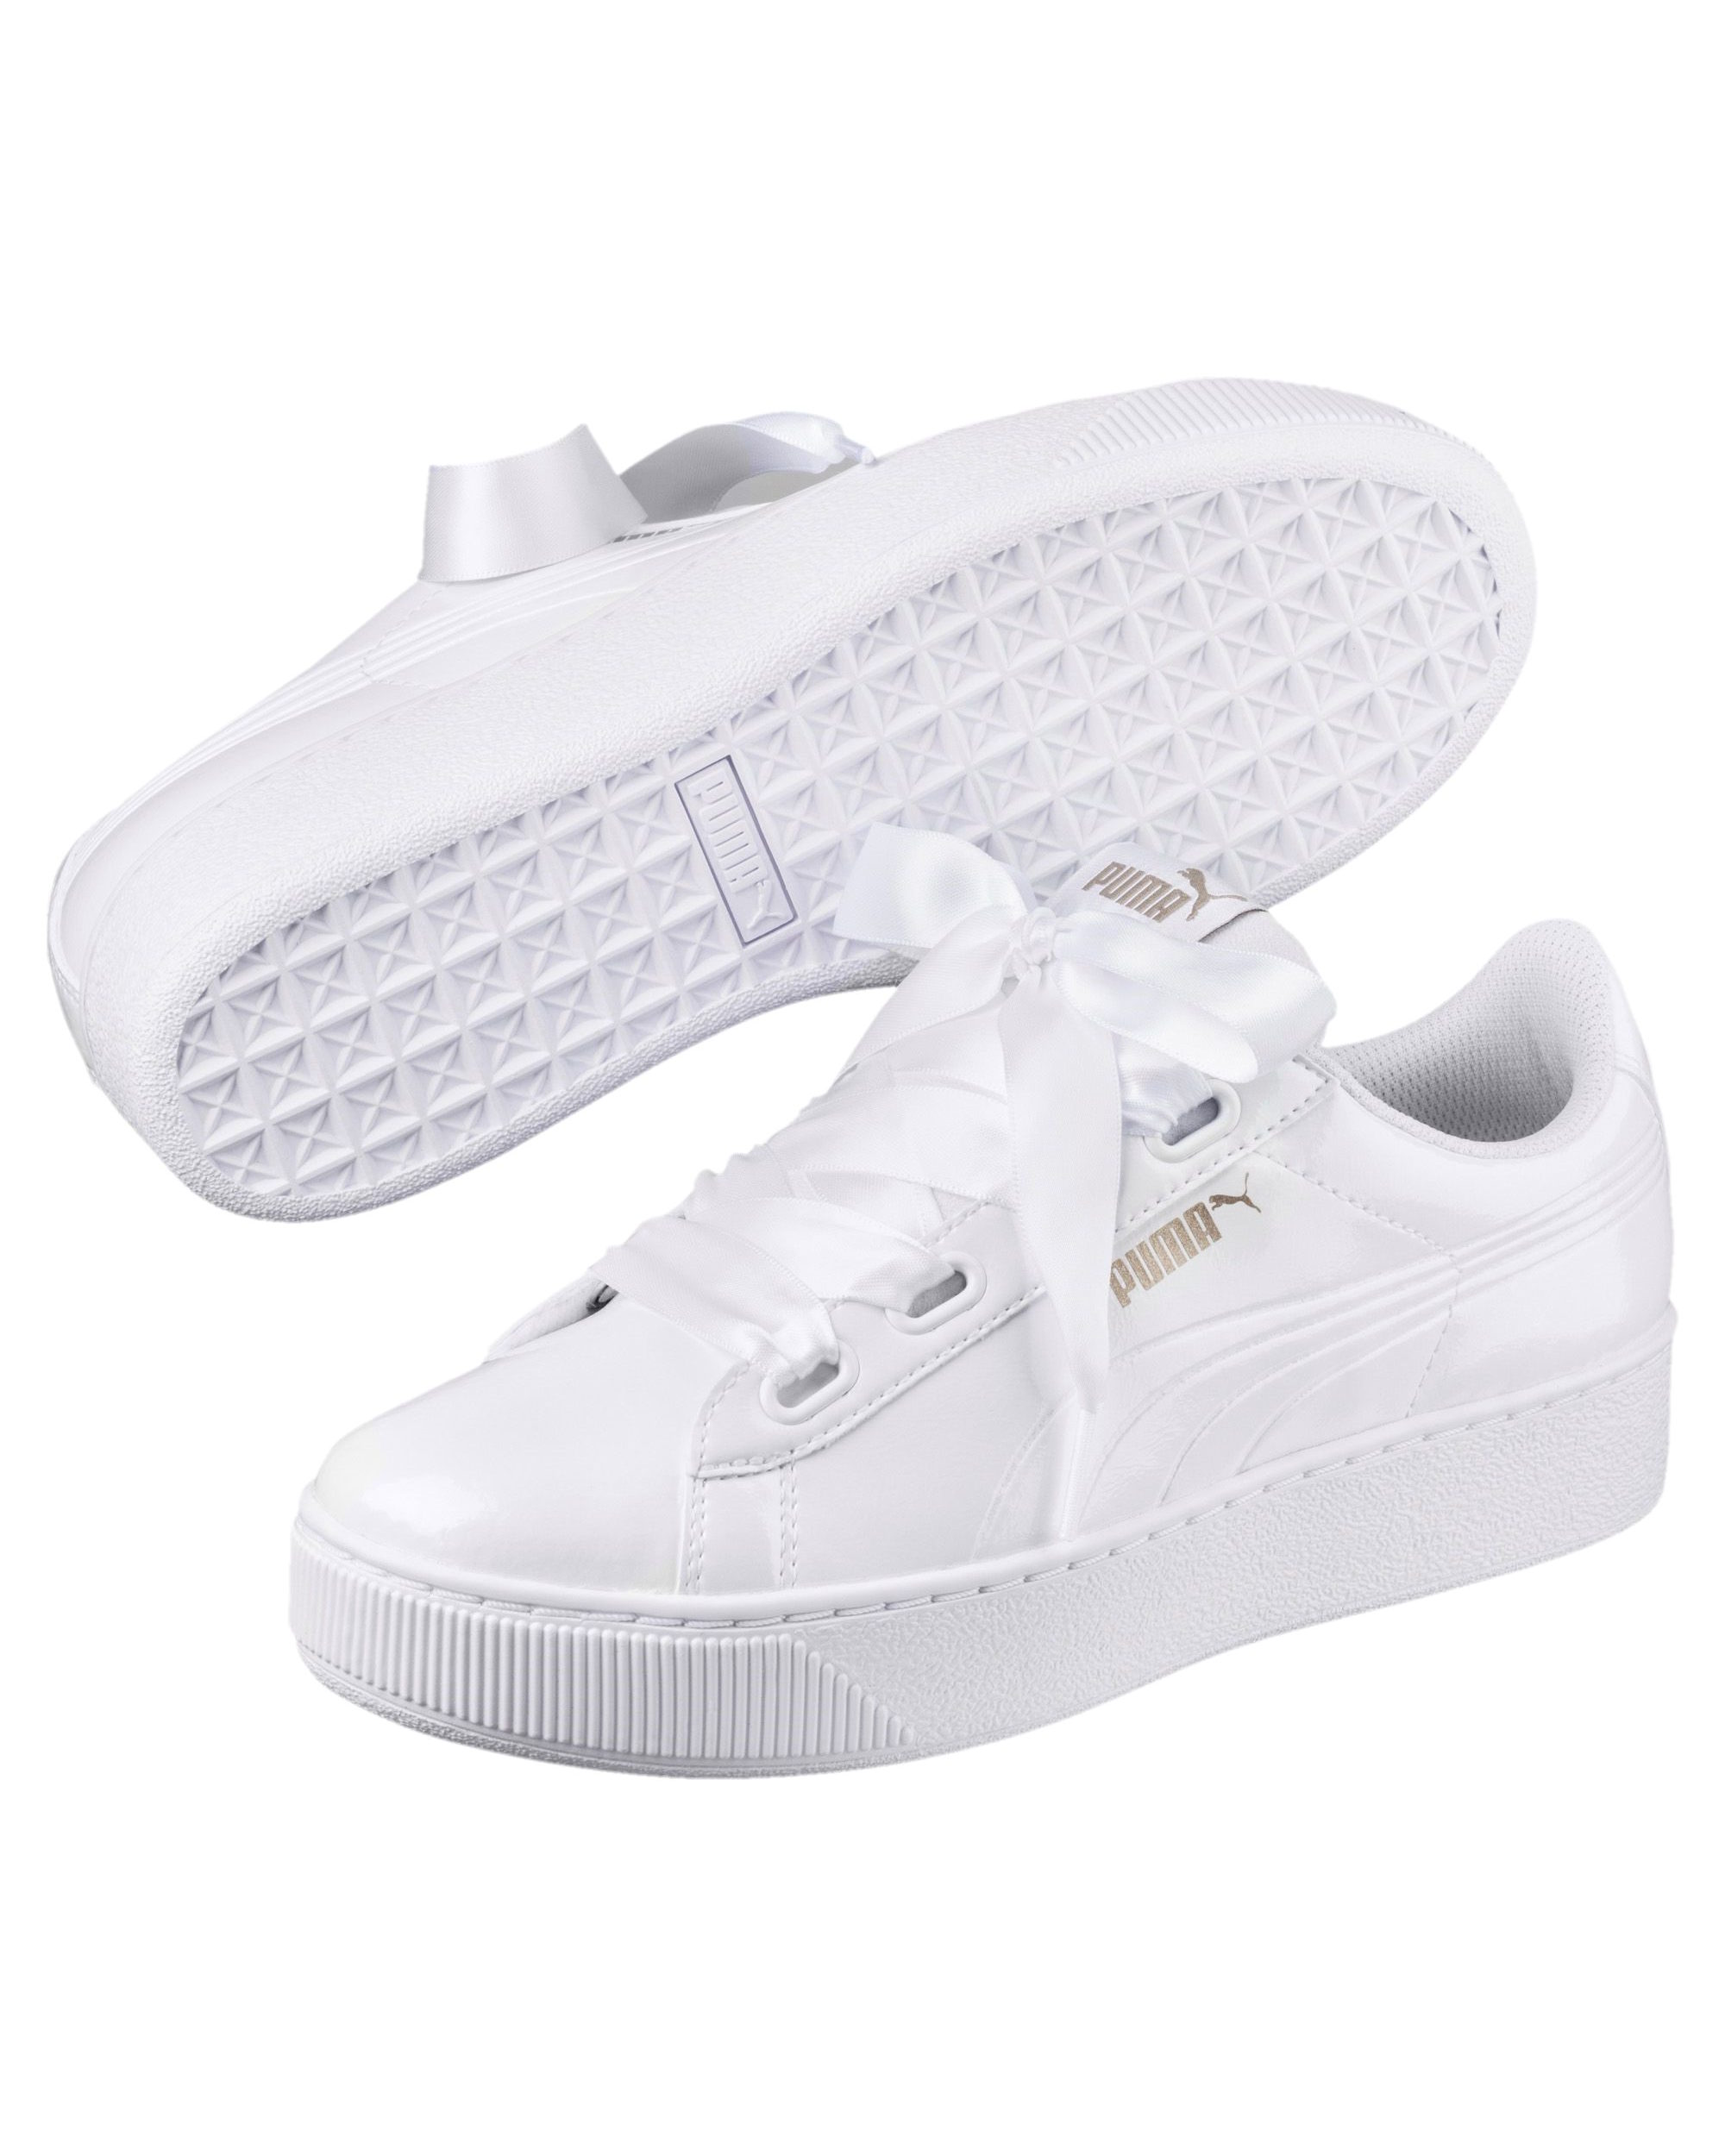 Ribbon Puma P Shoes Vikky Chaussures Platform Sneakers Sportif w1O1z84A